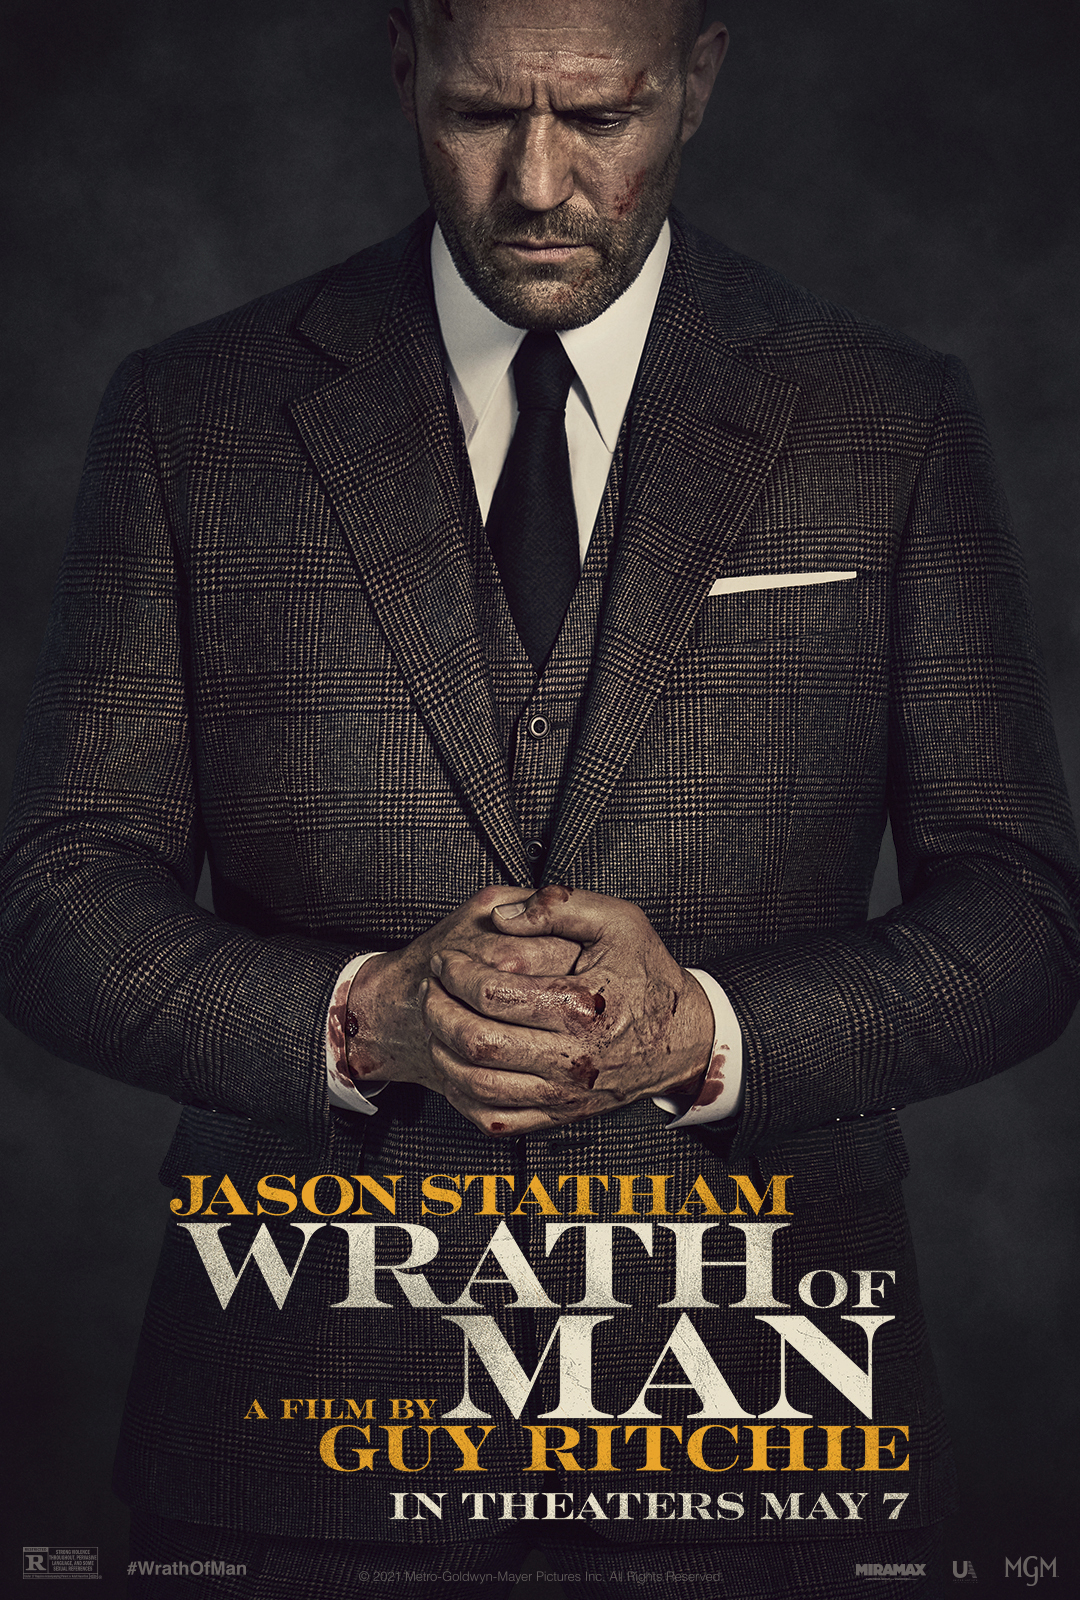 Movie poster image for WRATH OF MAN